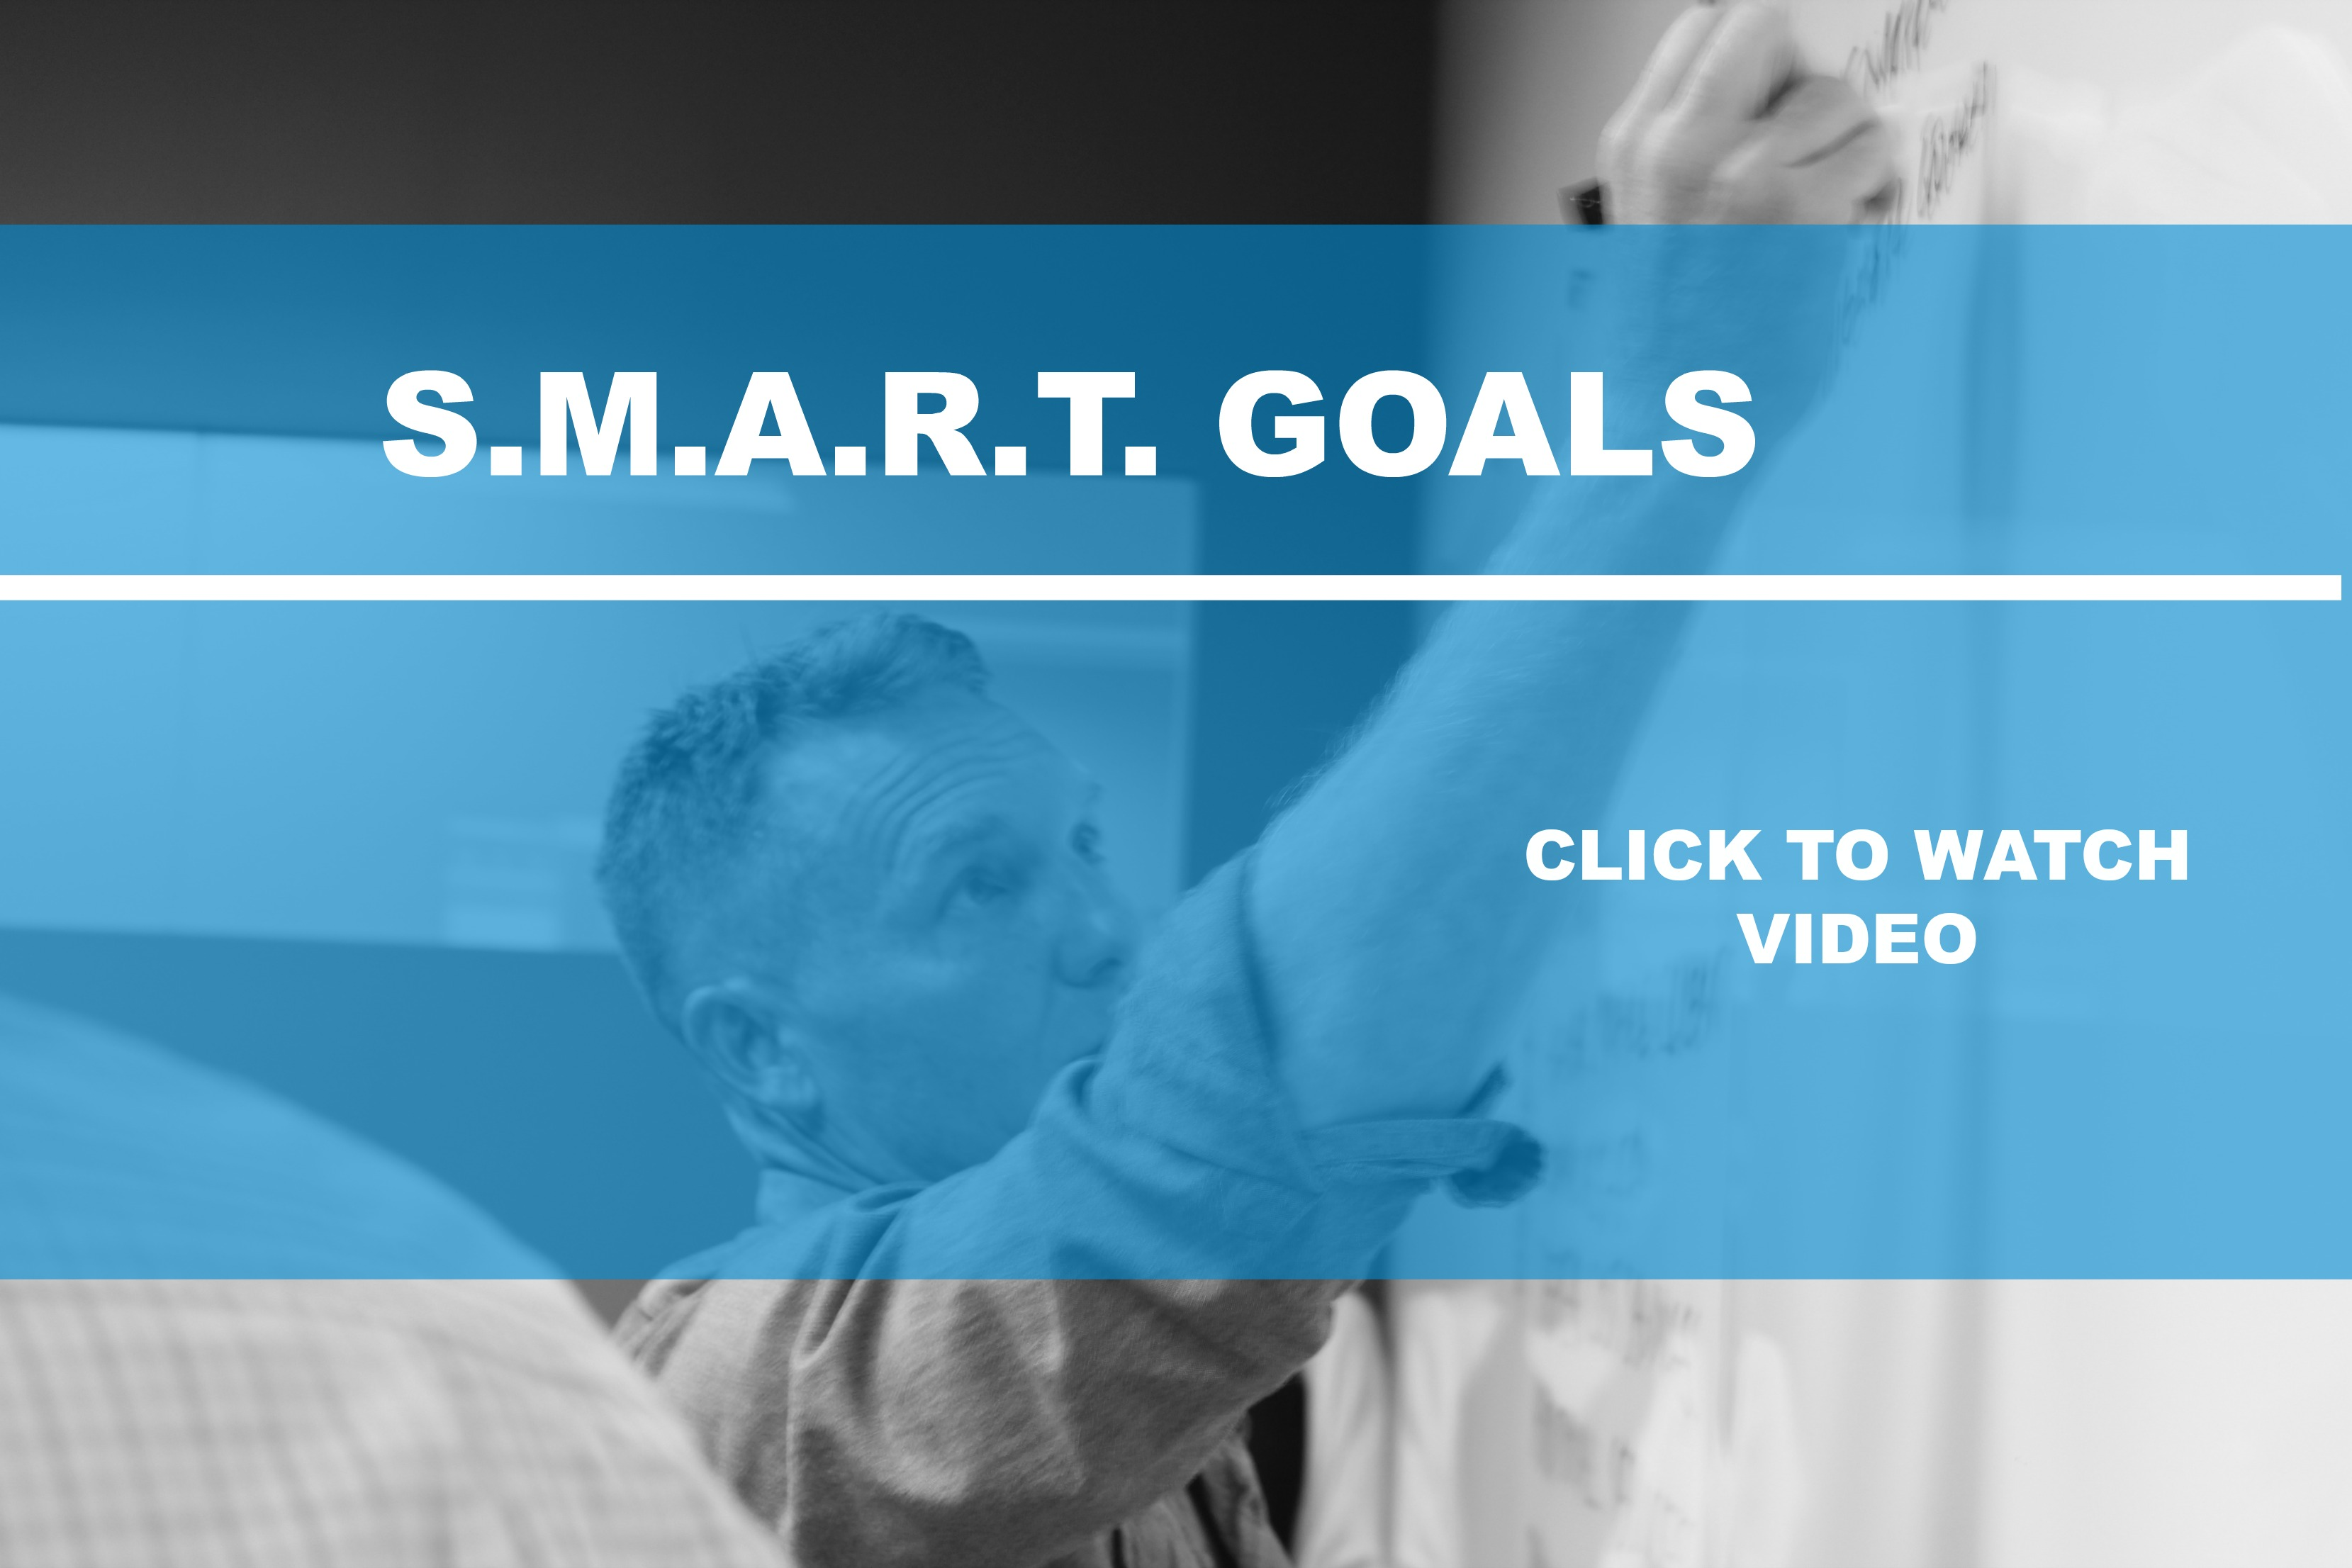 S.M.A.R.T. Goals in Your Organization